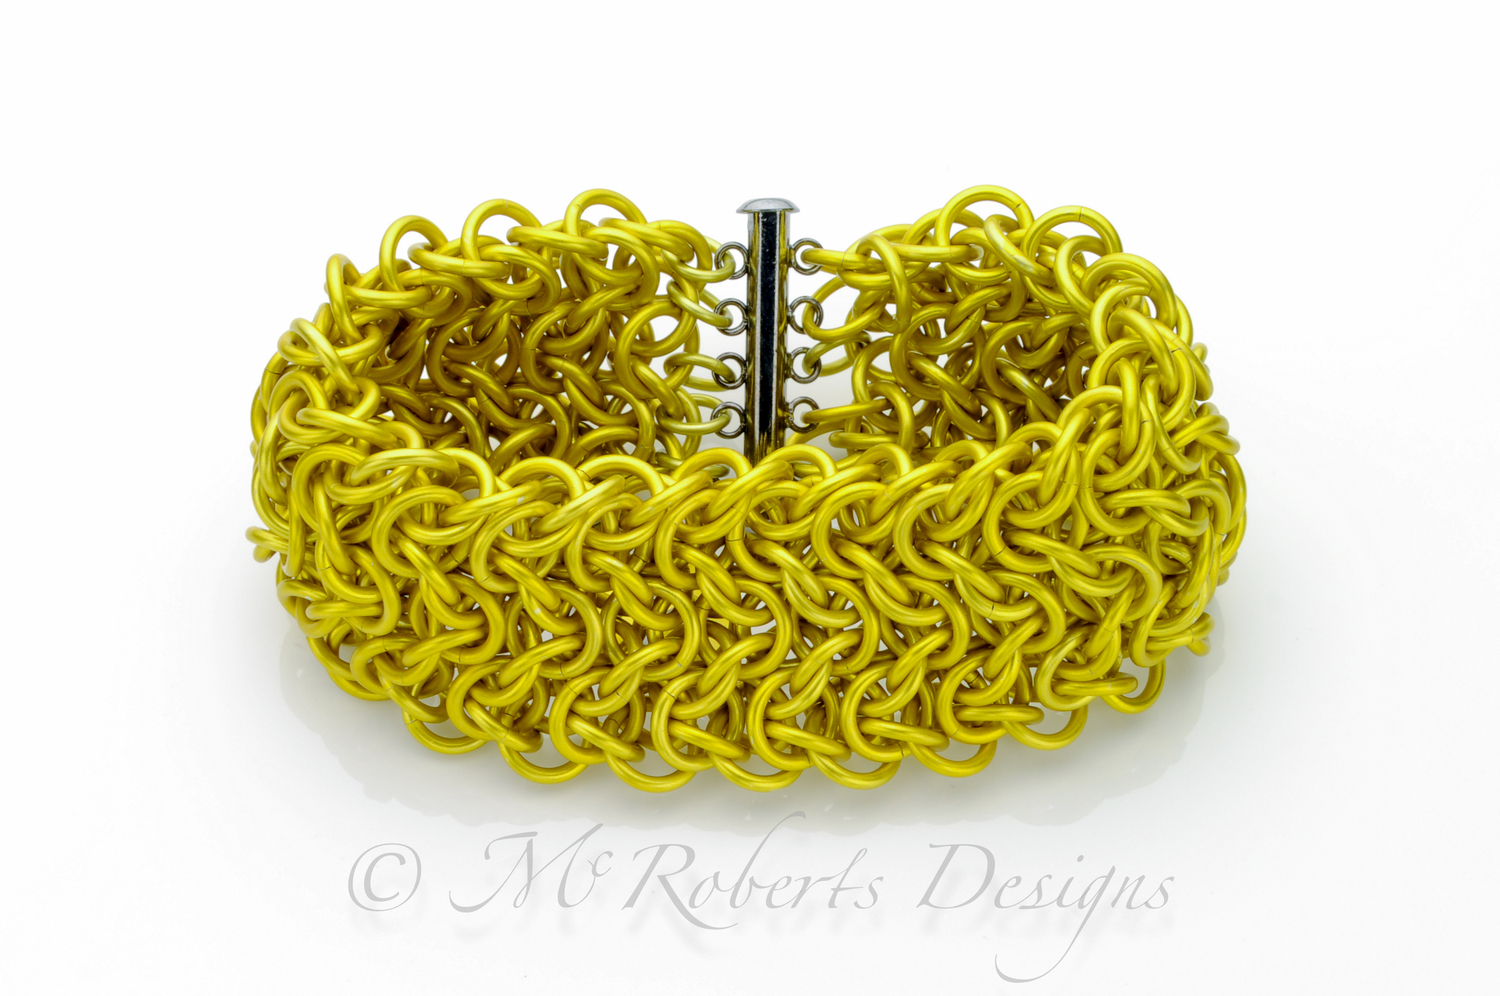 Made with yellow anodized Aluminum